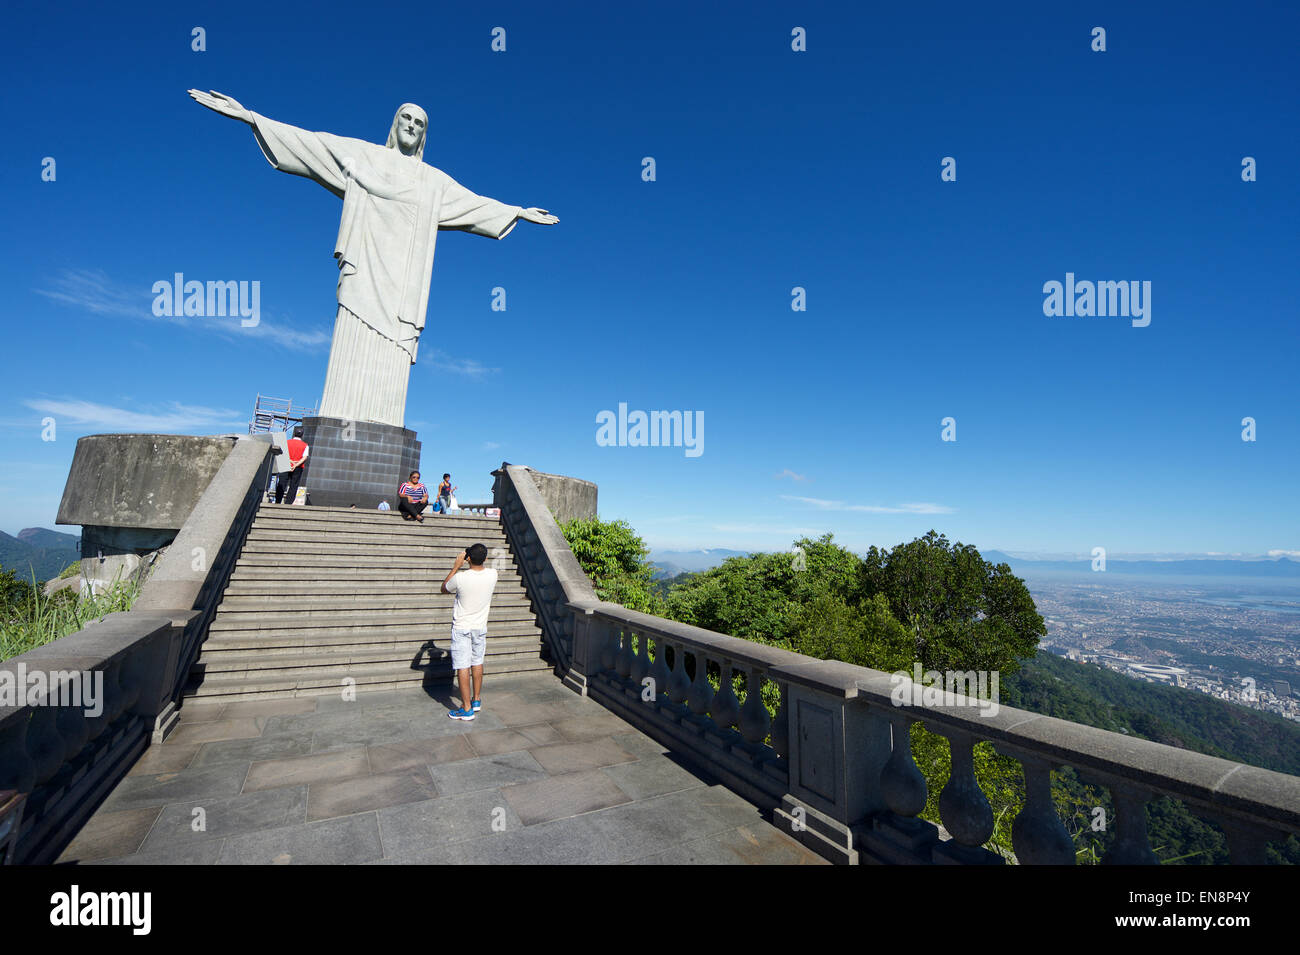 RIO DE JANEIRO, BRAZIL - MARCH 05, 2015: The first group of tourists arrive at the Statue of Christ the Redeemer Stock Photo